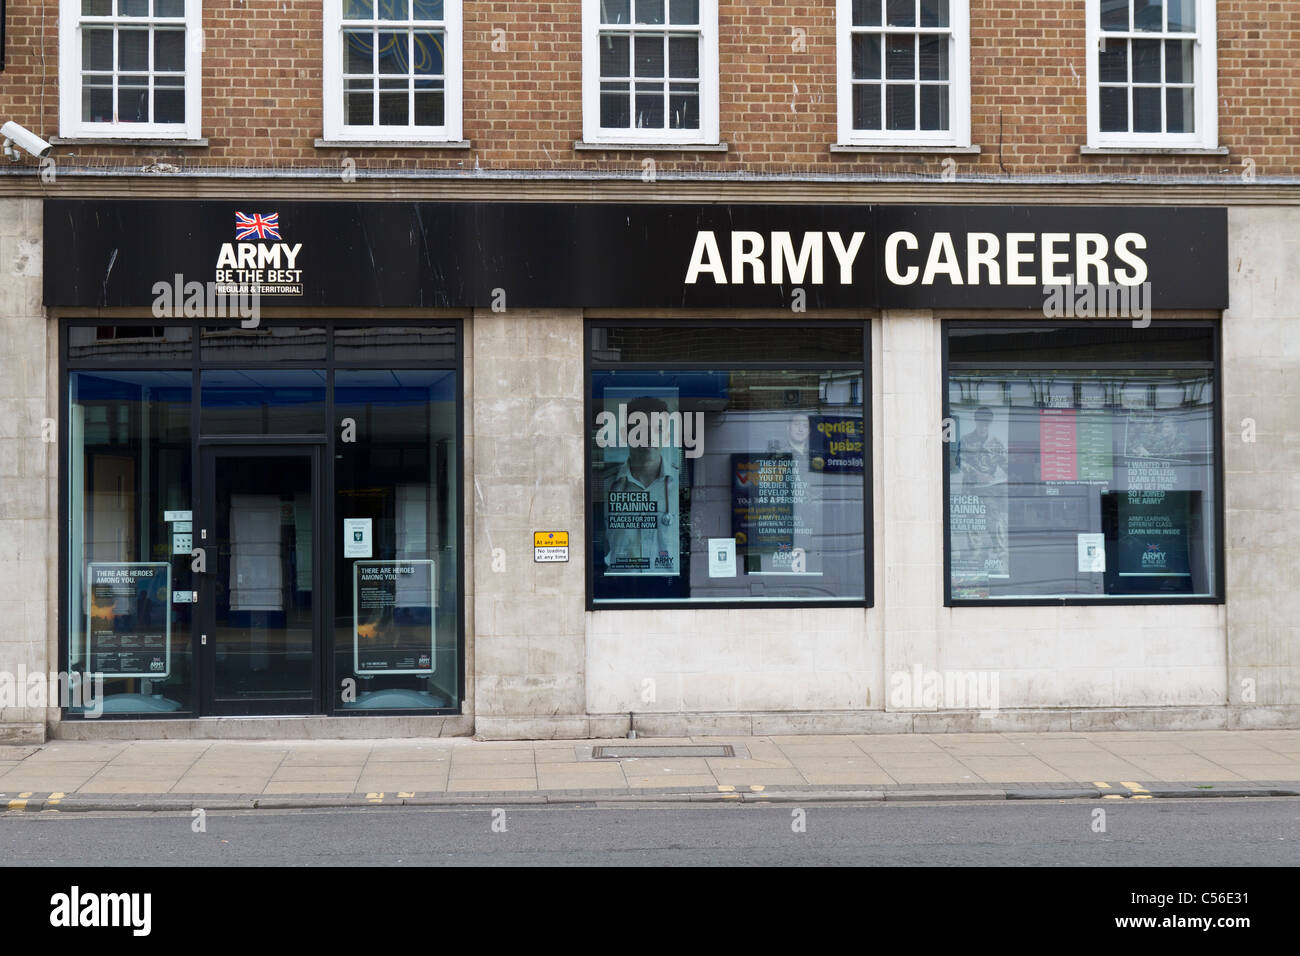 An Army careers information office - Stock Image